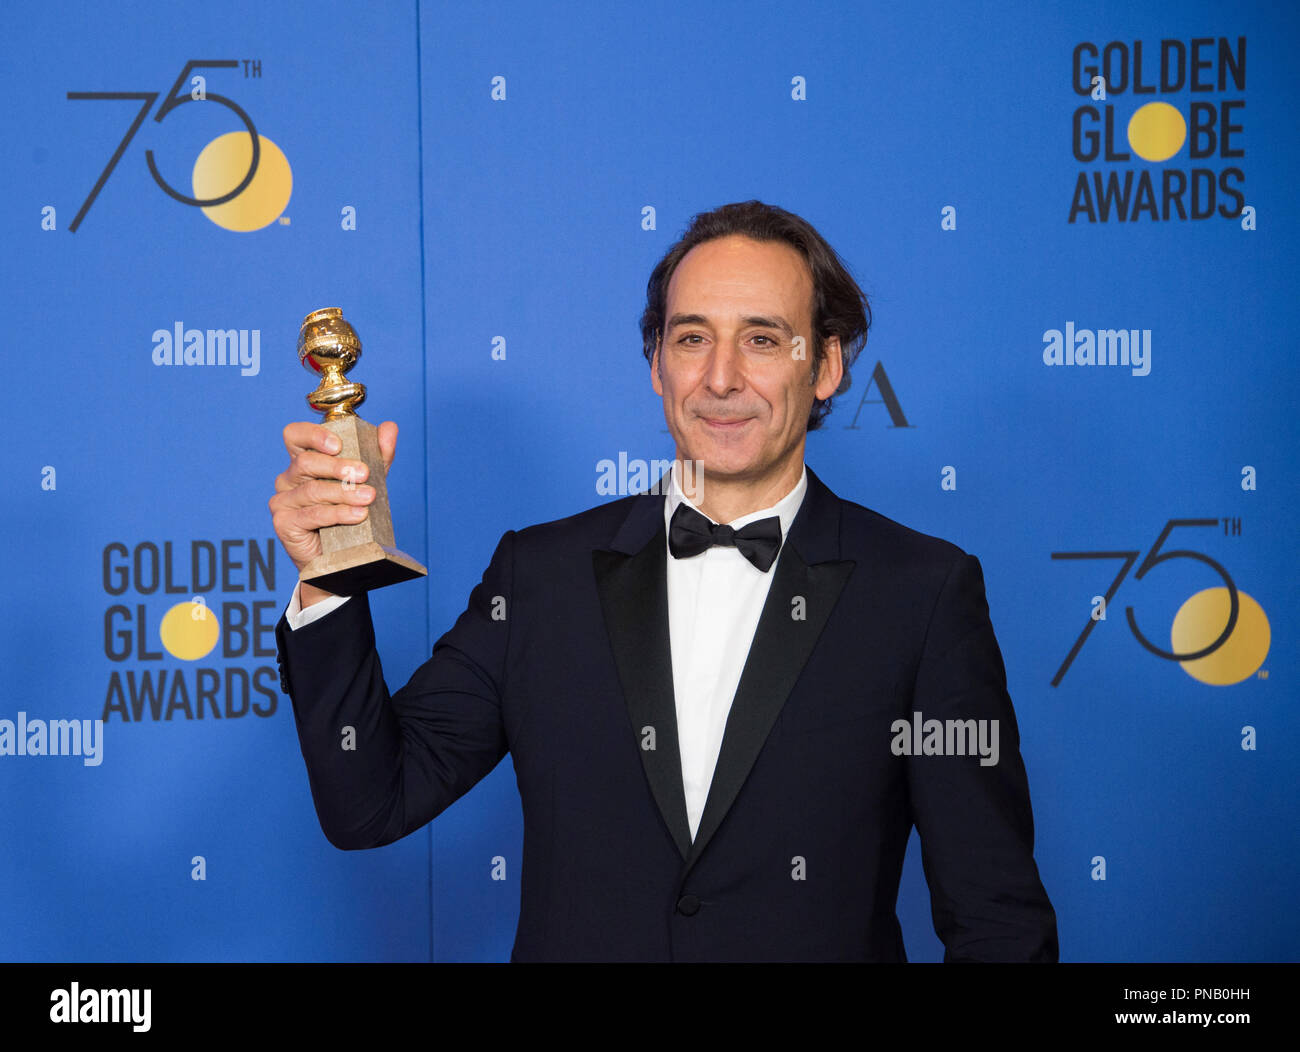 "After winning the category of BEST ORIGINAL SCORE – MOTION PICTURE for ""The Shape of Water,"" Alexandre Desplat poses with the award backstage in the press room at the 75th Annual Golden Globe Awards at the Beverly Hilton in Beverly Hills, CA on Sunday, January 7, 2018. Stock Photo"